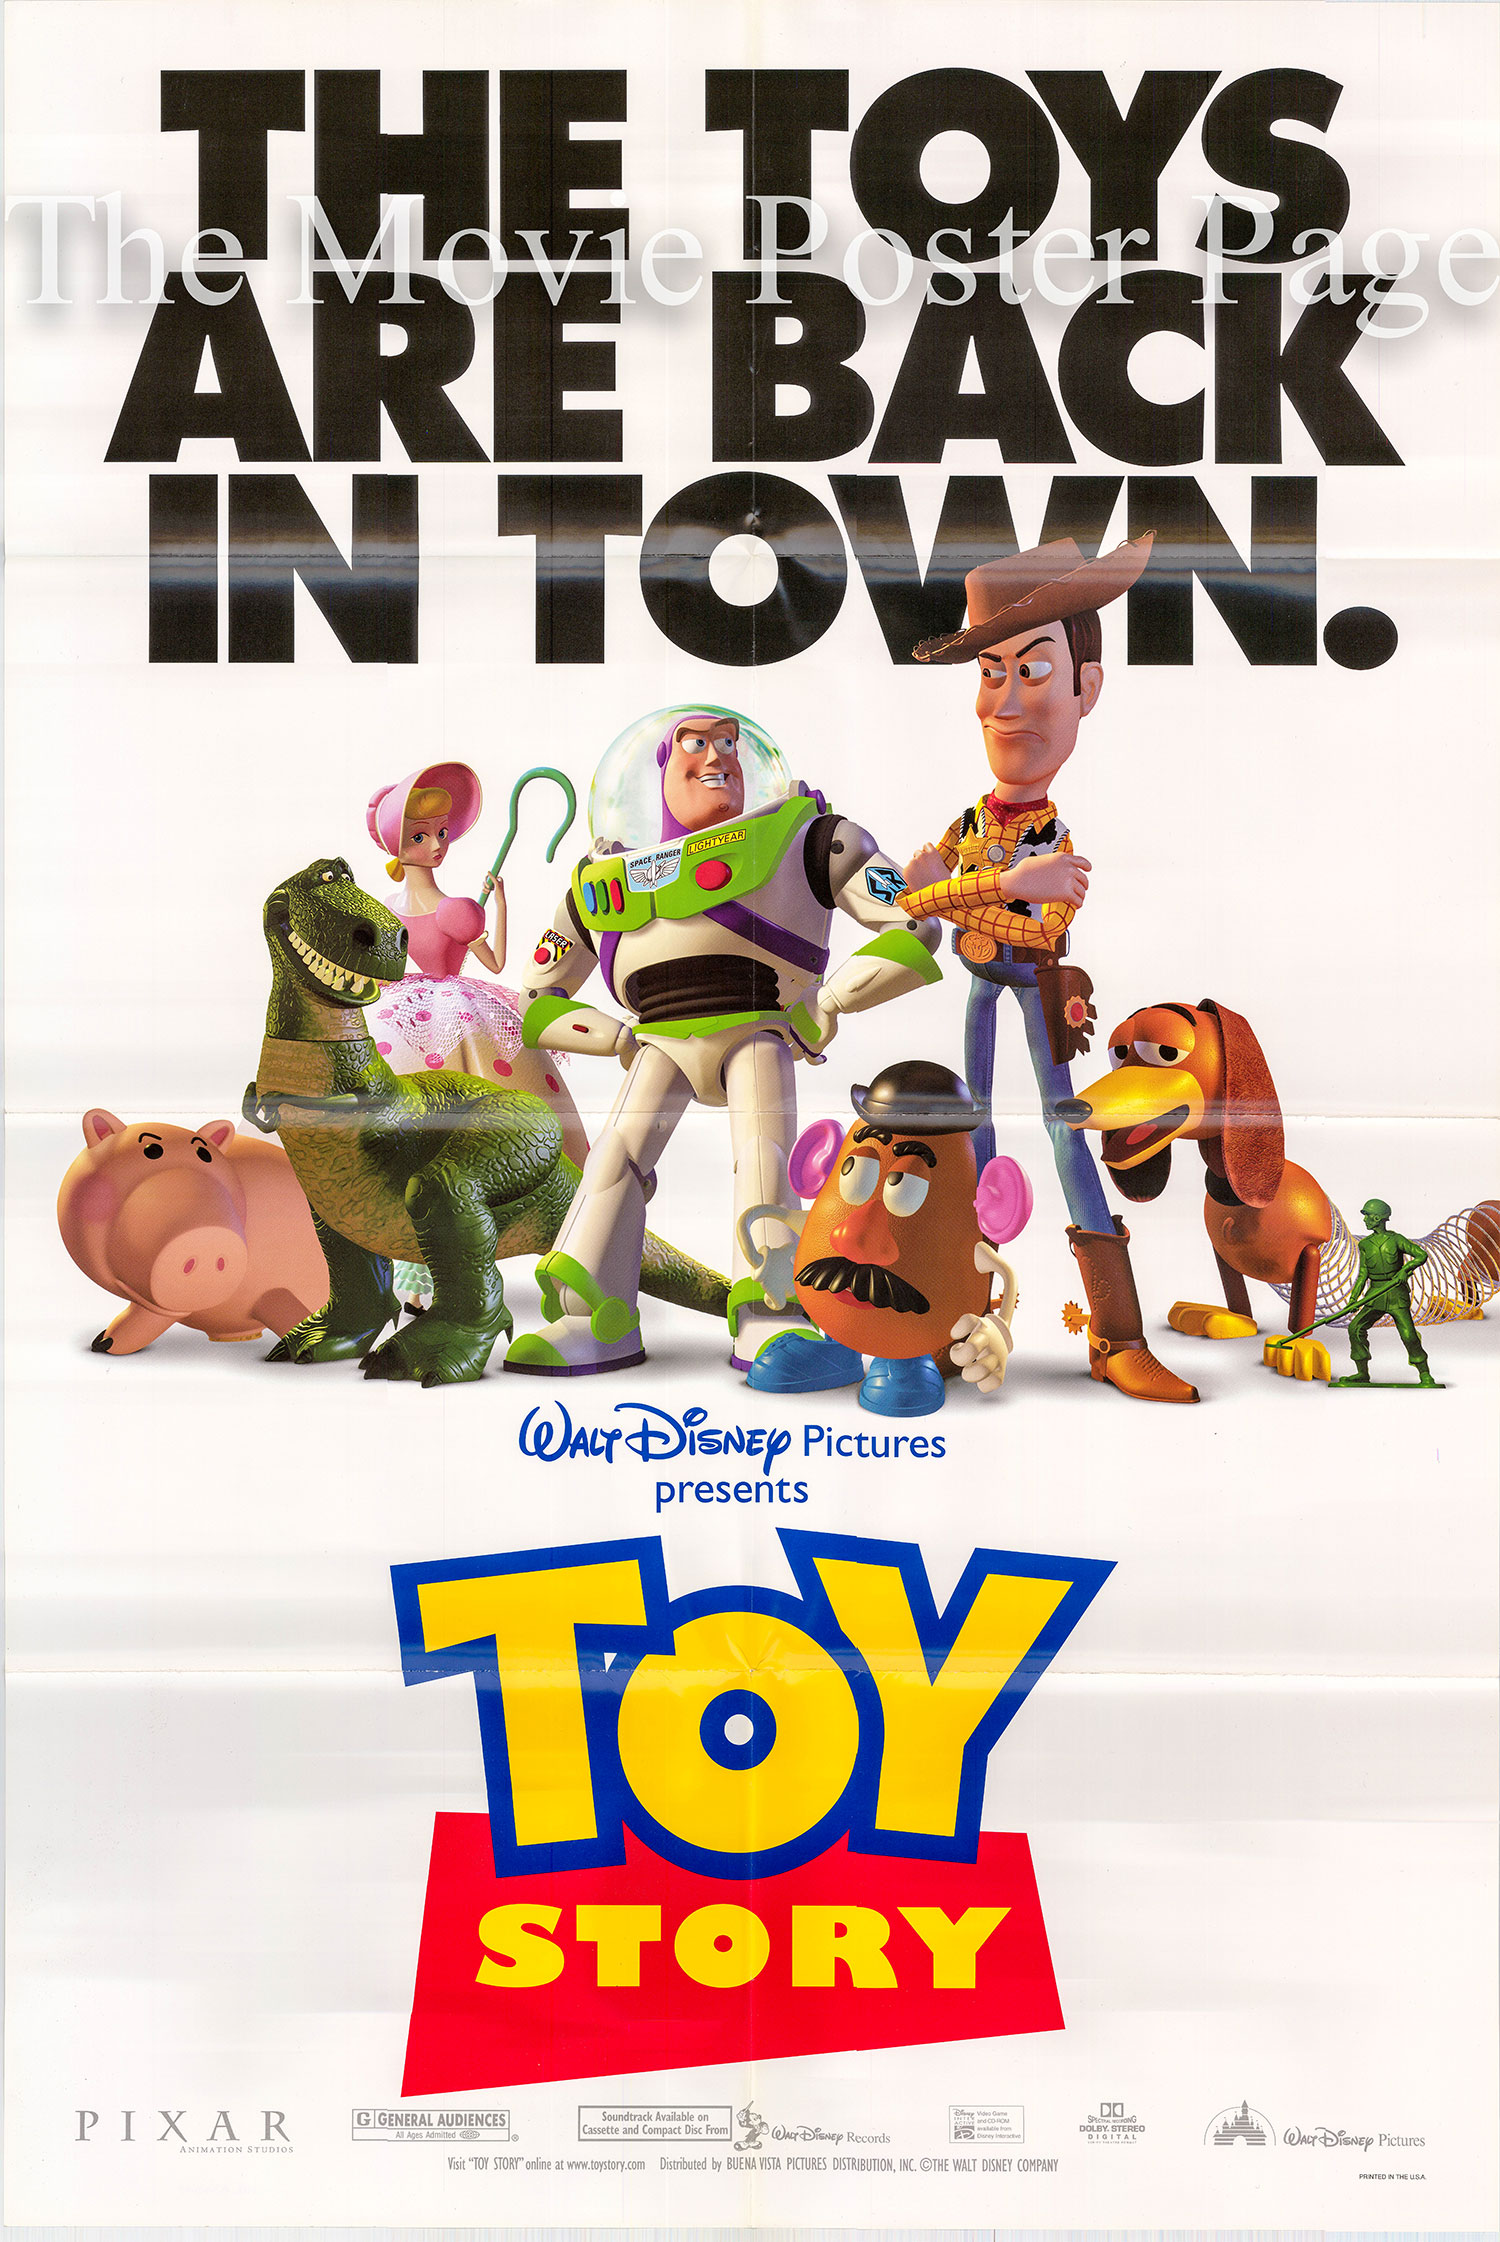 Pictured is a US promotional poster for the 1995 John Lasseter film Toy Story starring Tom Hanks as Woody.